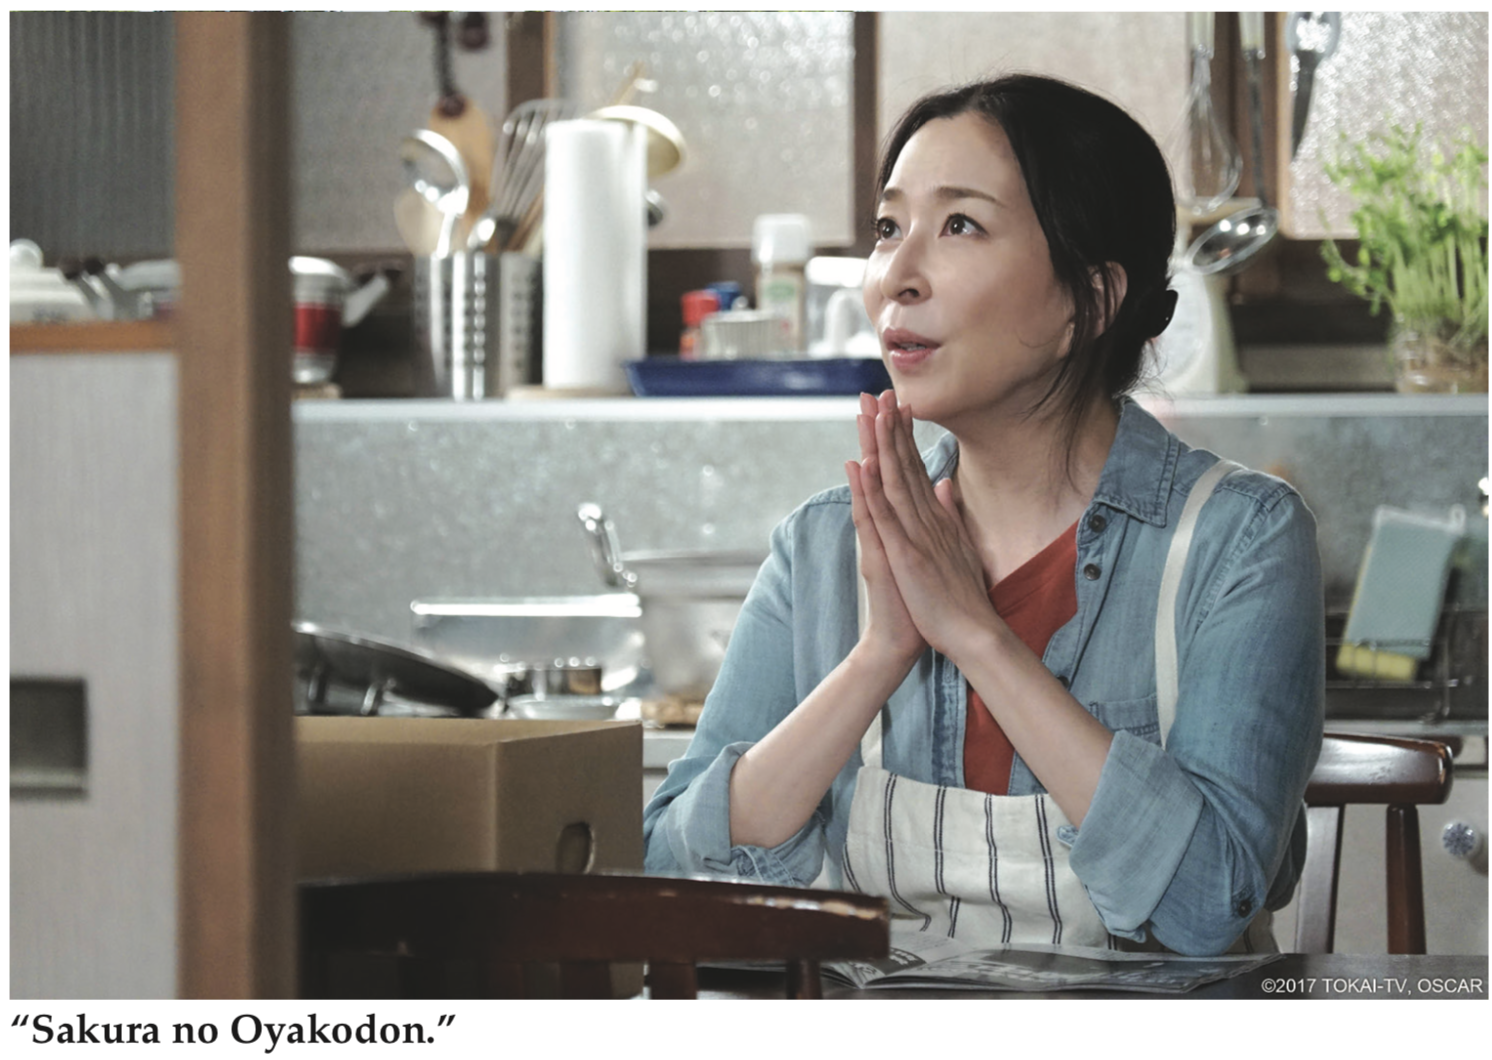 Photo of lady praying in apron from 'Sakura no Oyakodon'